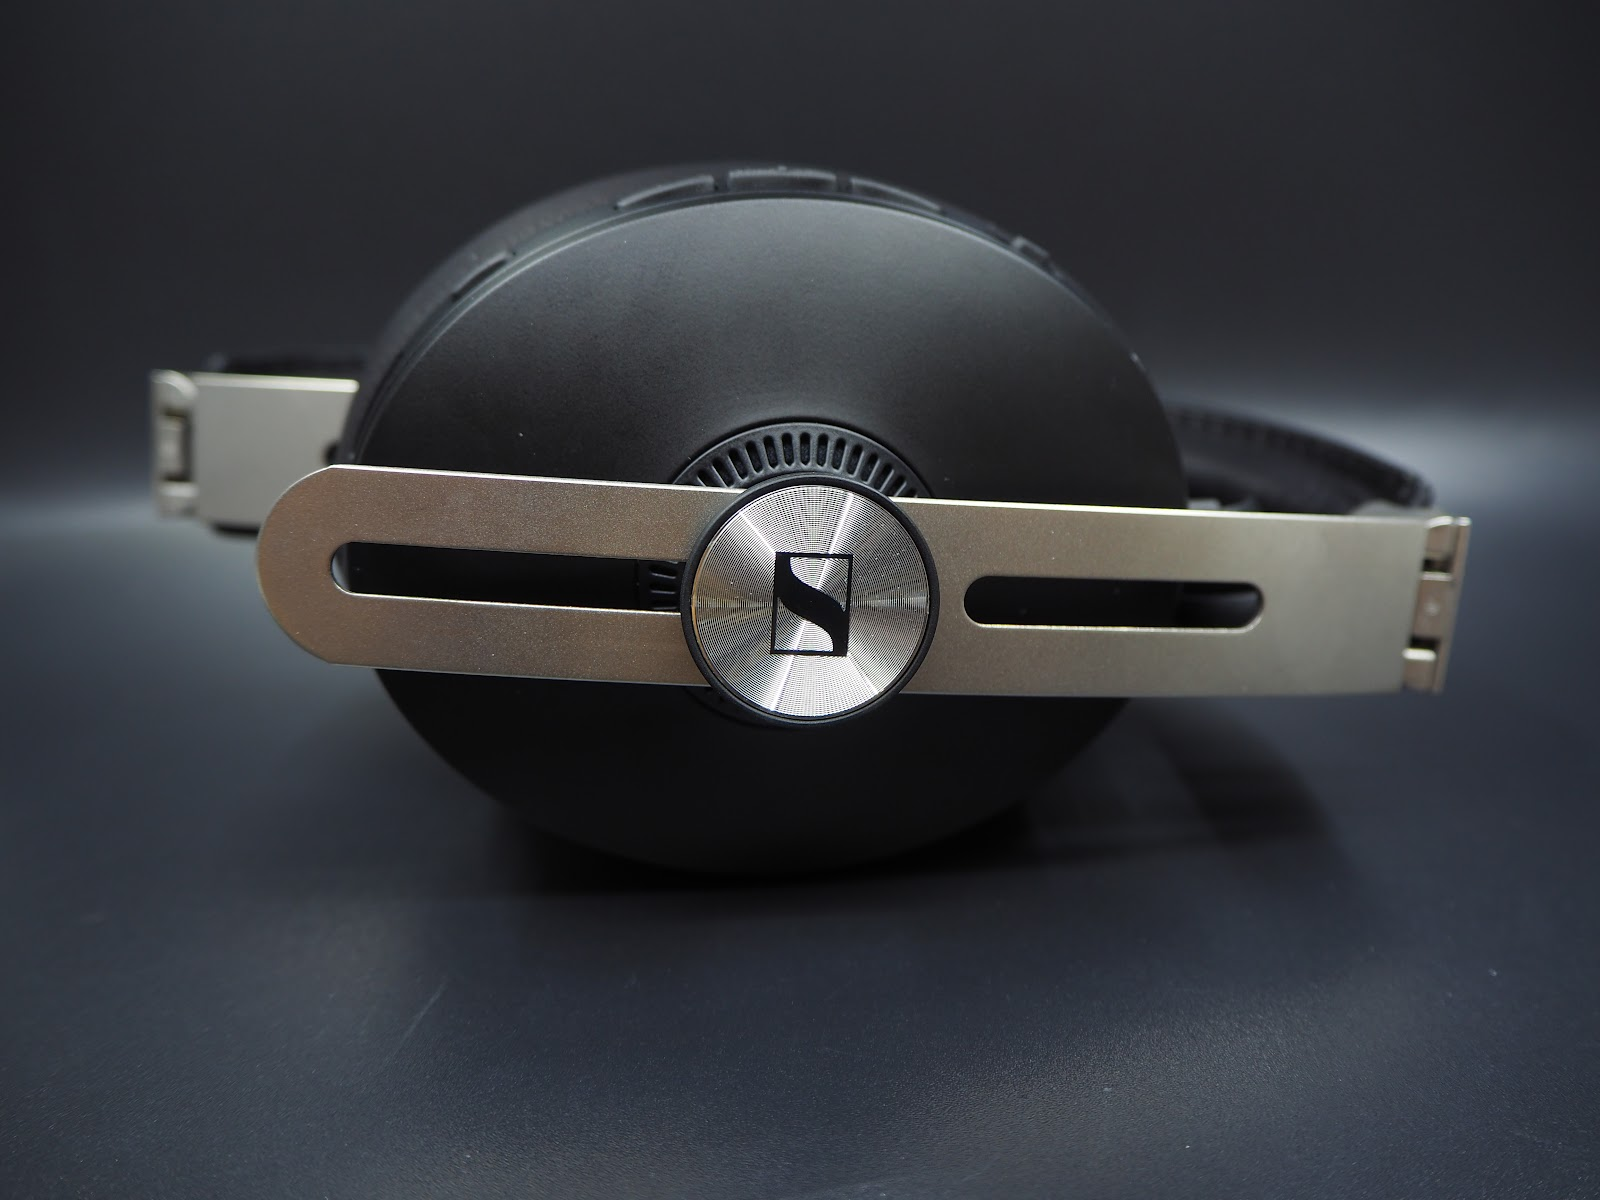 The side metal bar is the signature of MOMENTUM headphones